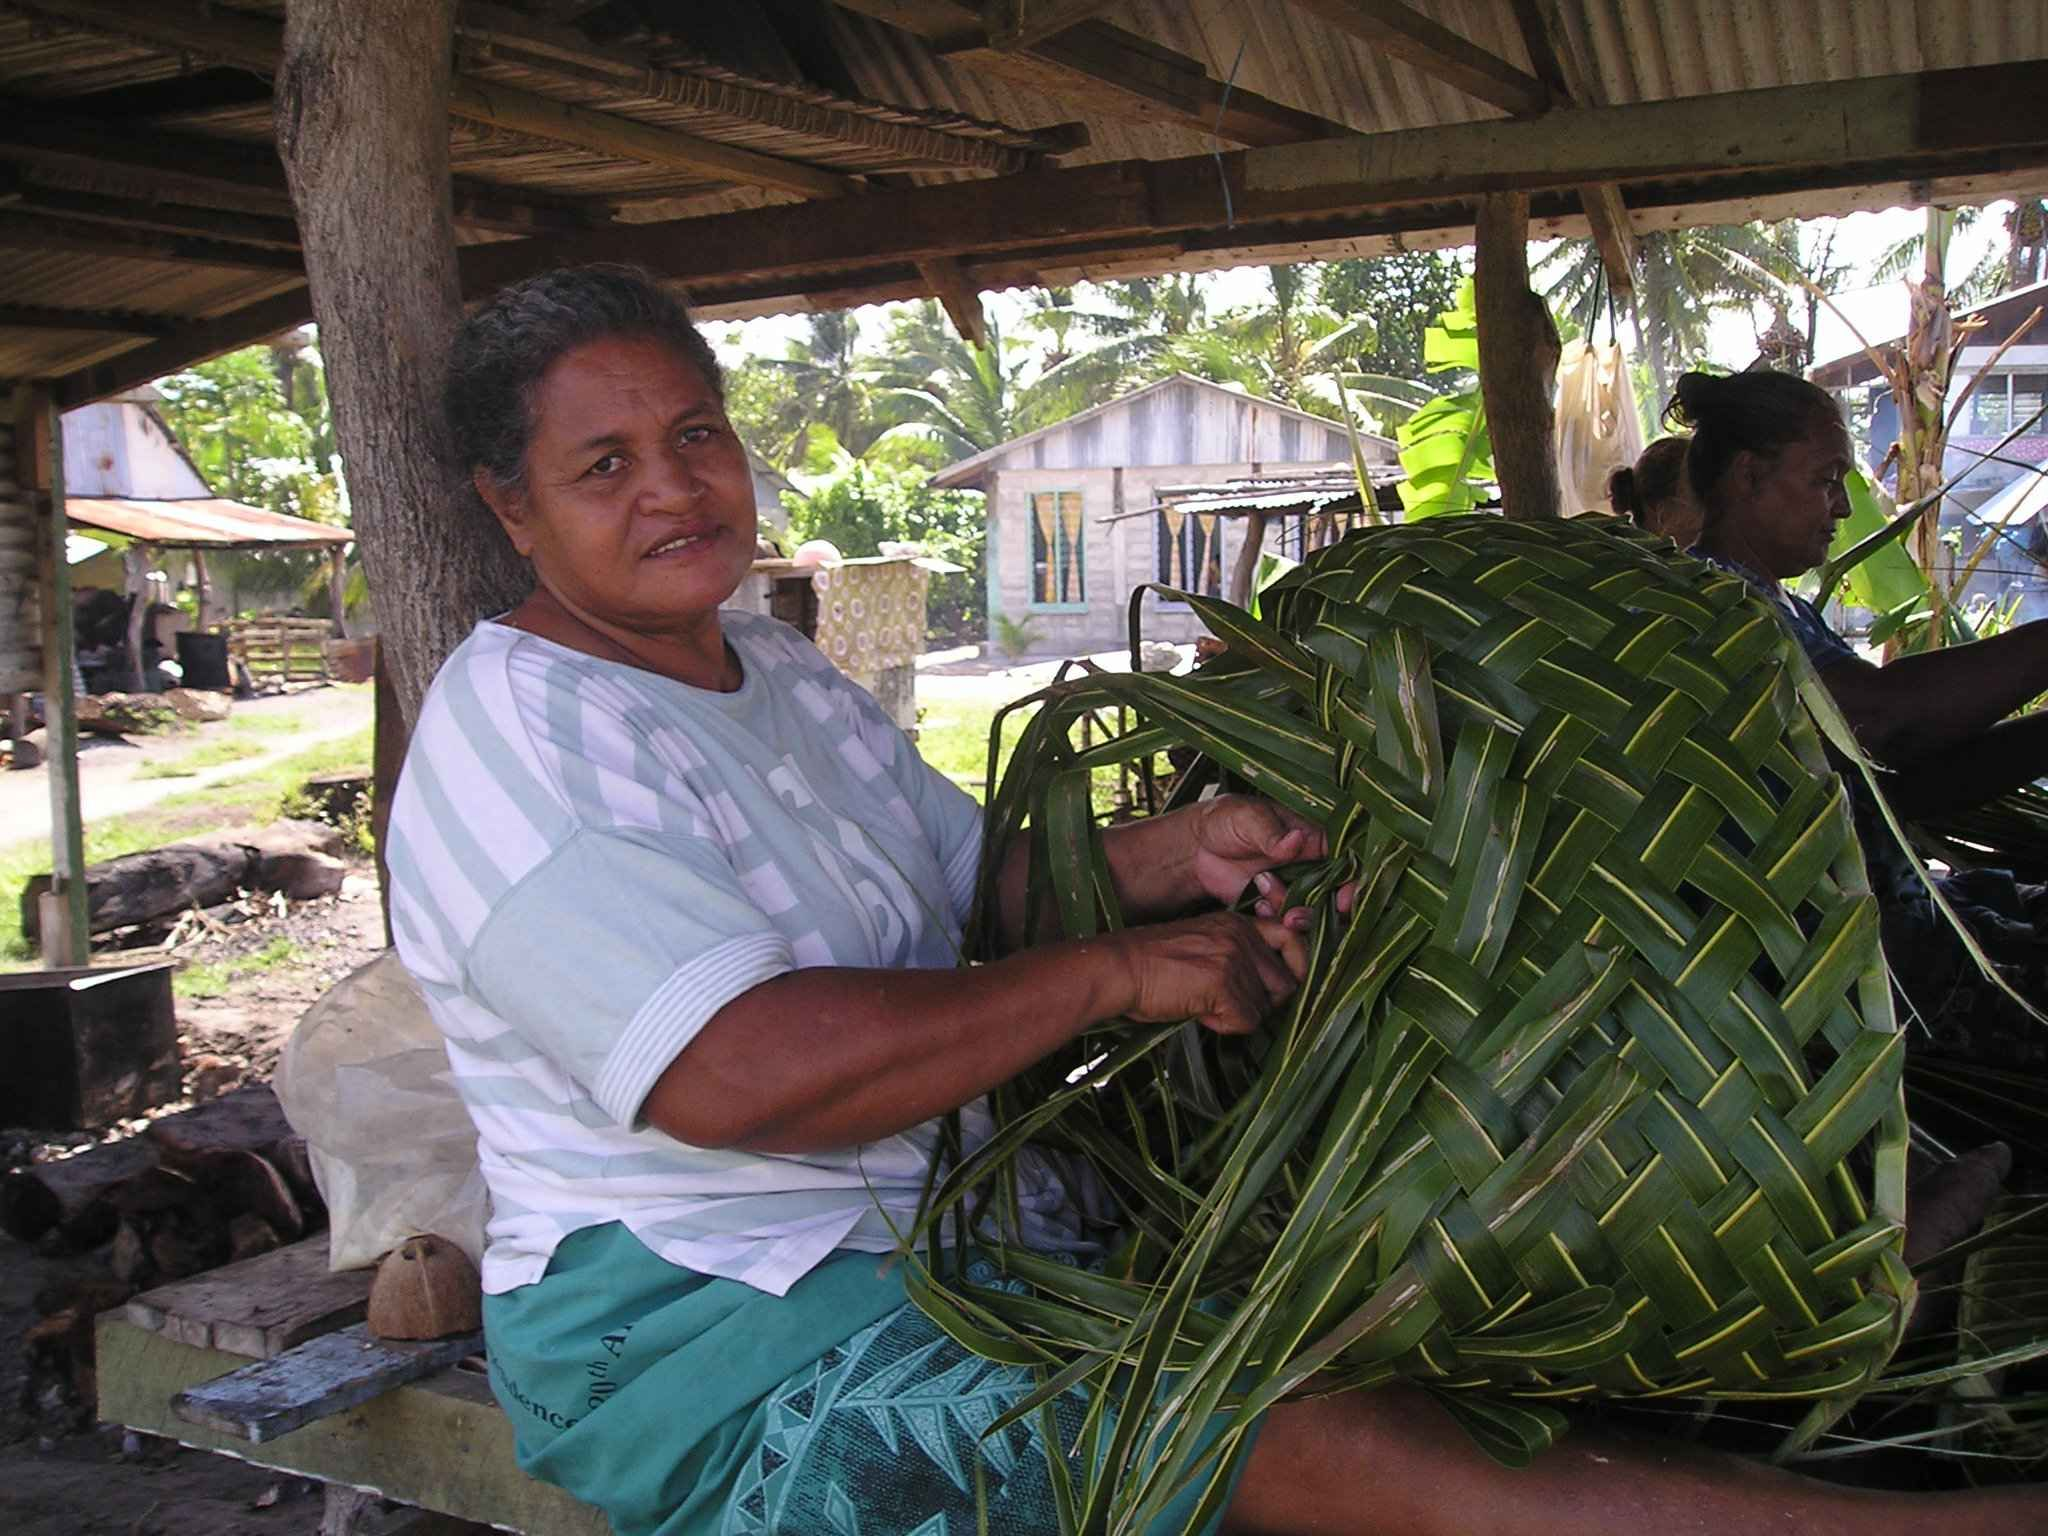 How To Weave A Coconut Leaf Basket : Weaving a coconut palm leaf basket in tuvalu